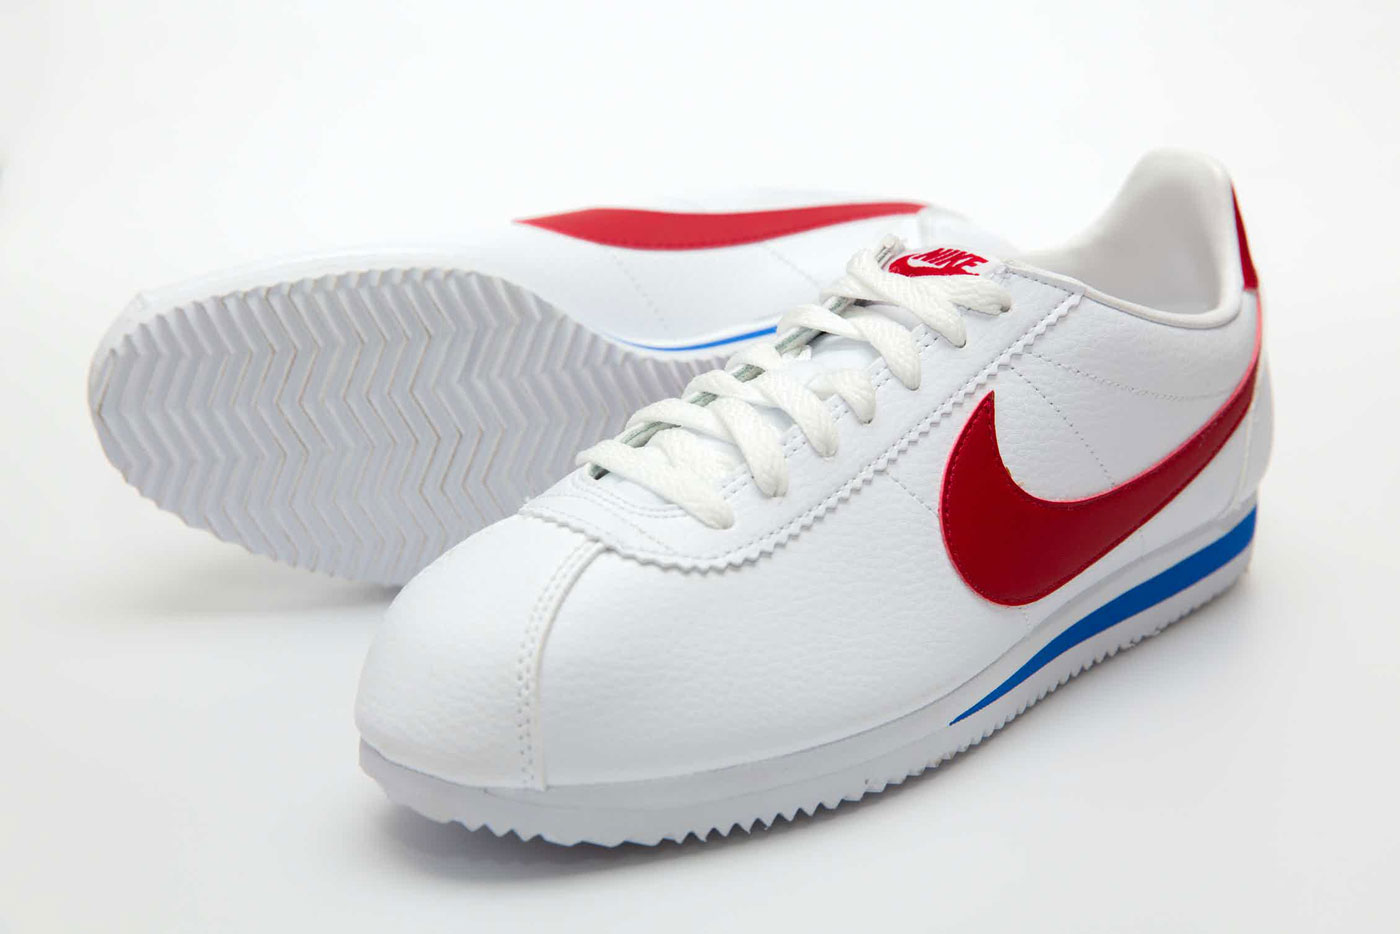 History of Sneakers - The Cortez is Nike's original running shoe, designed by co-founder Bill Bowerman and released in 1972.